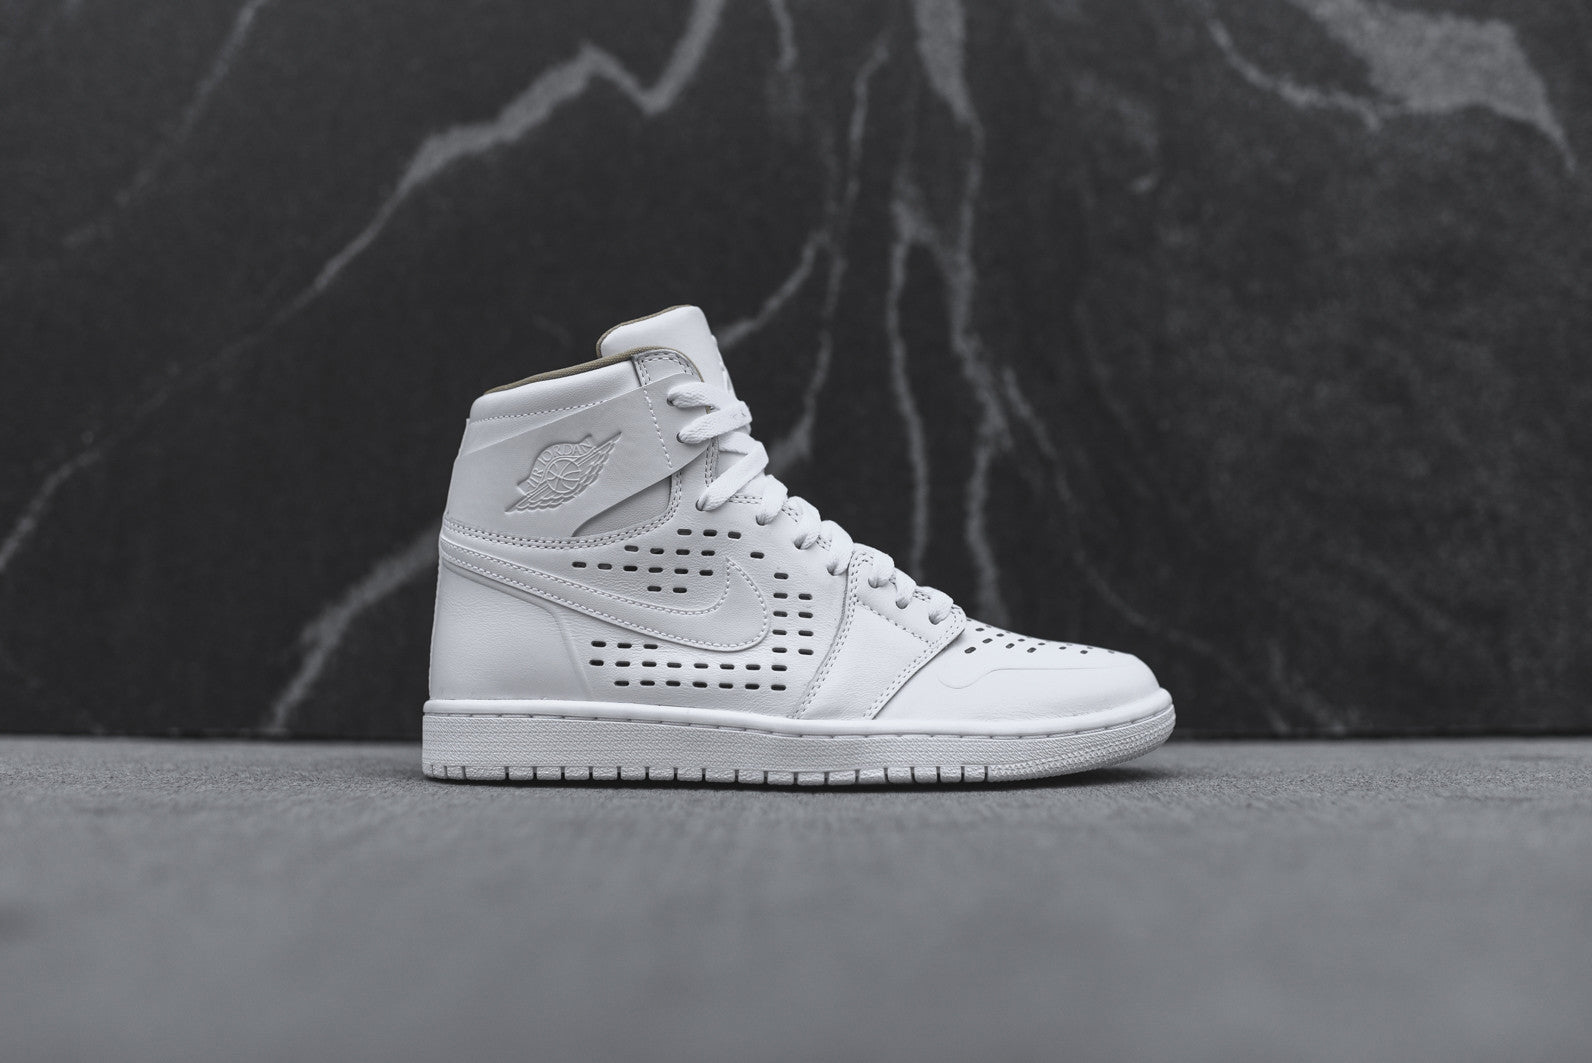 Nike Air Jordan 1 Retro High Vachetta - White